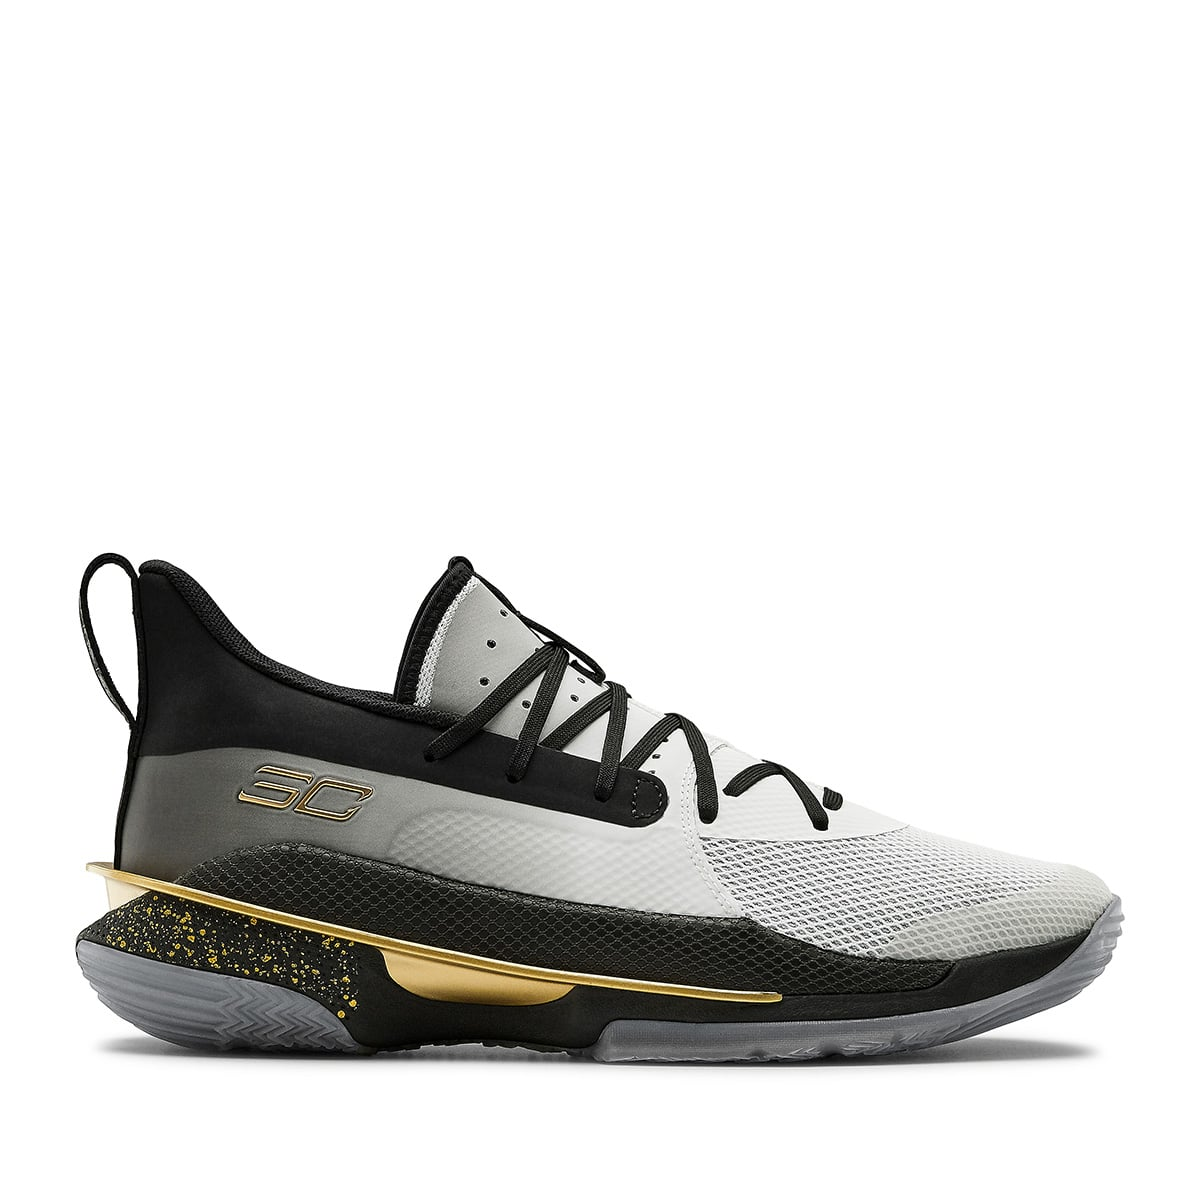 """UNDER ARMOUR Curry 7 """"FOR THE GAME"""" WHITE/BLACK/GOLD 20SU-S_photo_large"""